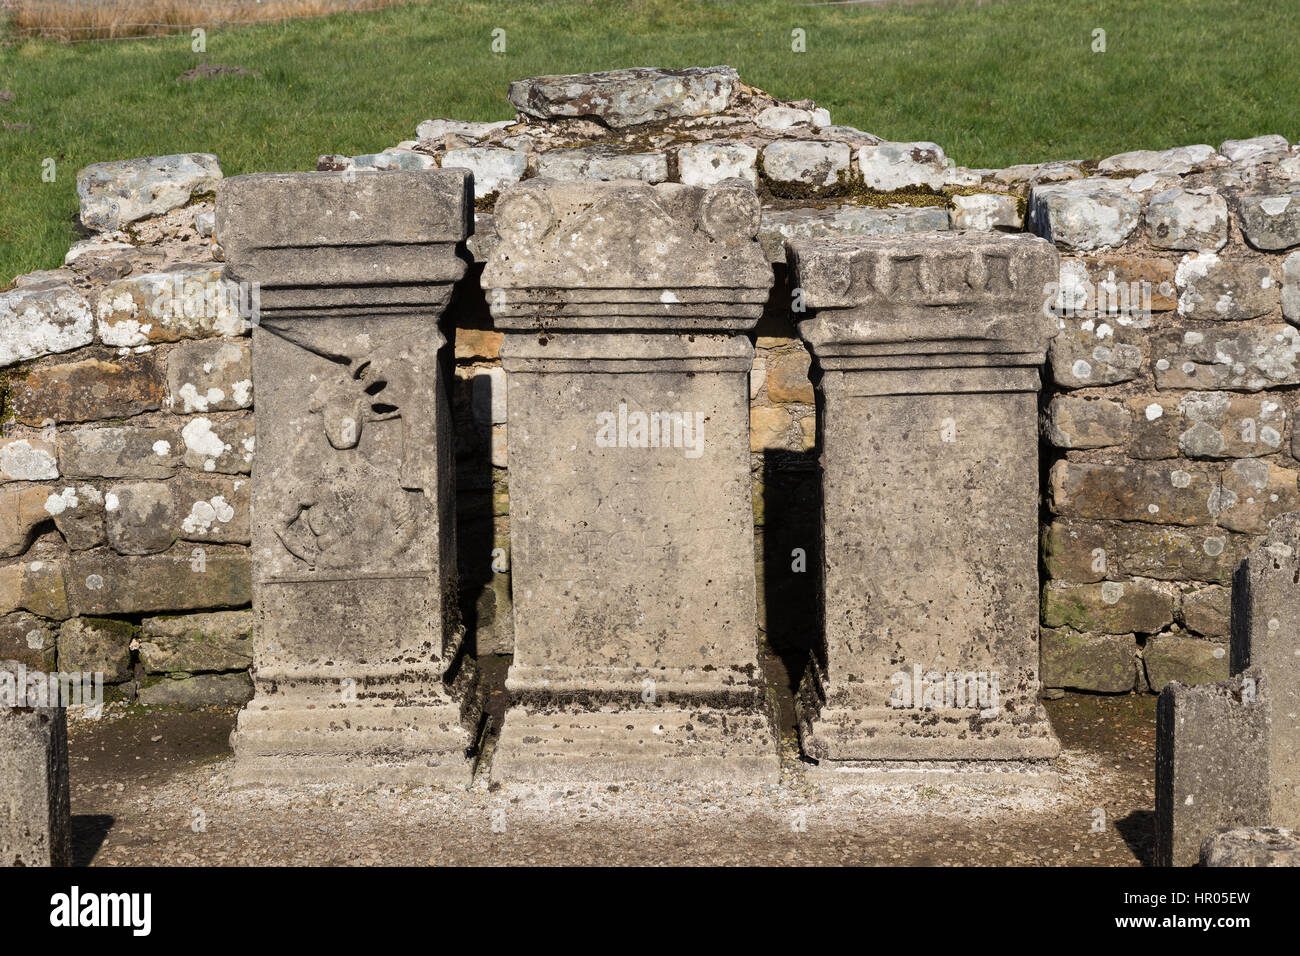 Hadrian's Wall: altars at the remains of the Mithraeum near Carrawburgh (Brocilitia) Roman fort, Northumberland - Stock Image